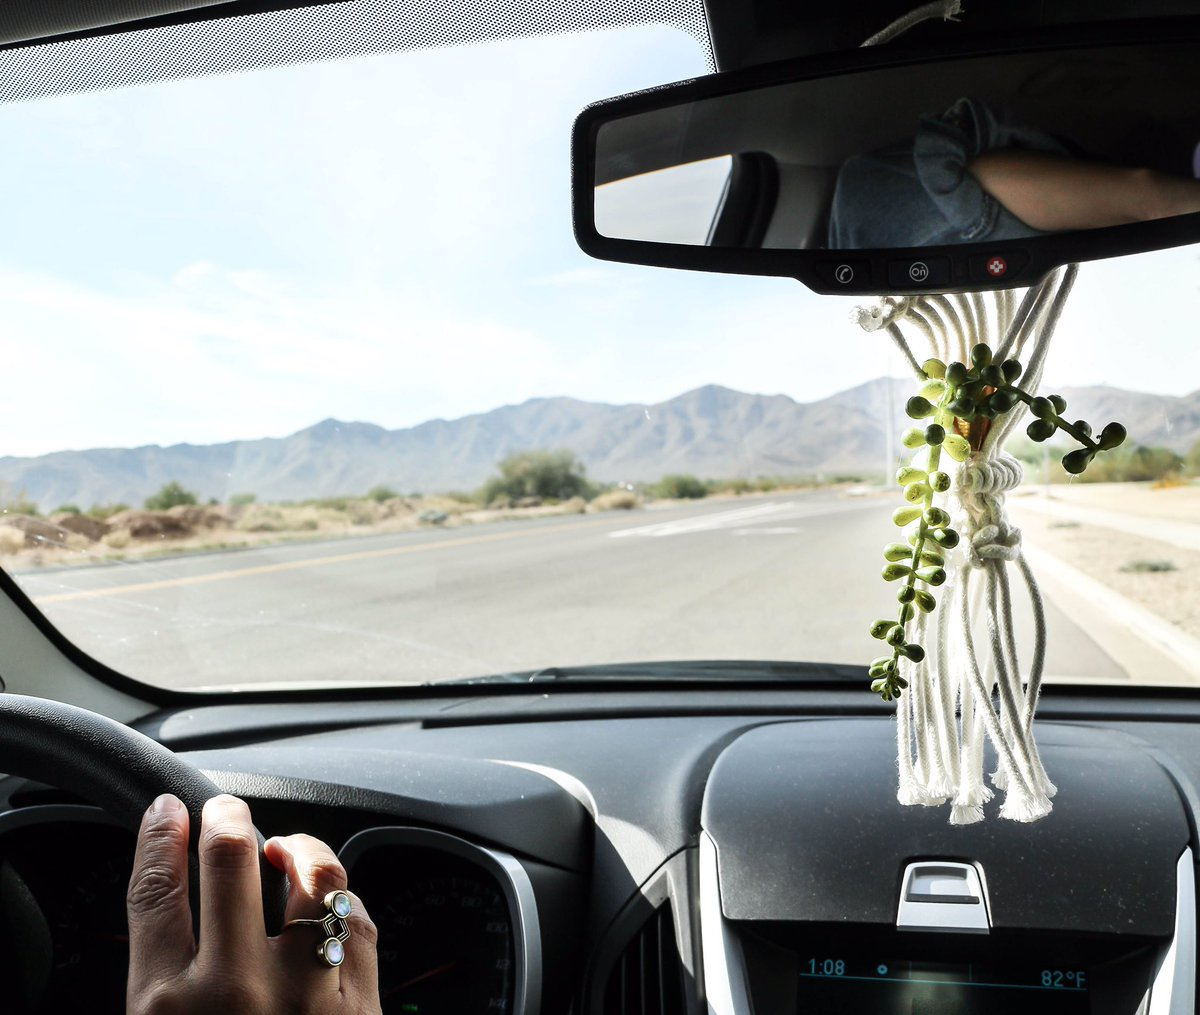 Cassie Garcia On Twitter There Is No Better Way To Make My Cars Environment More Like My Home Away From Home Than By Adding A Little Greenery Made This Mini Macrame Plant